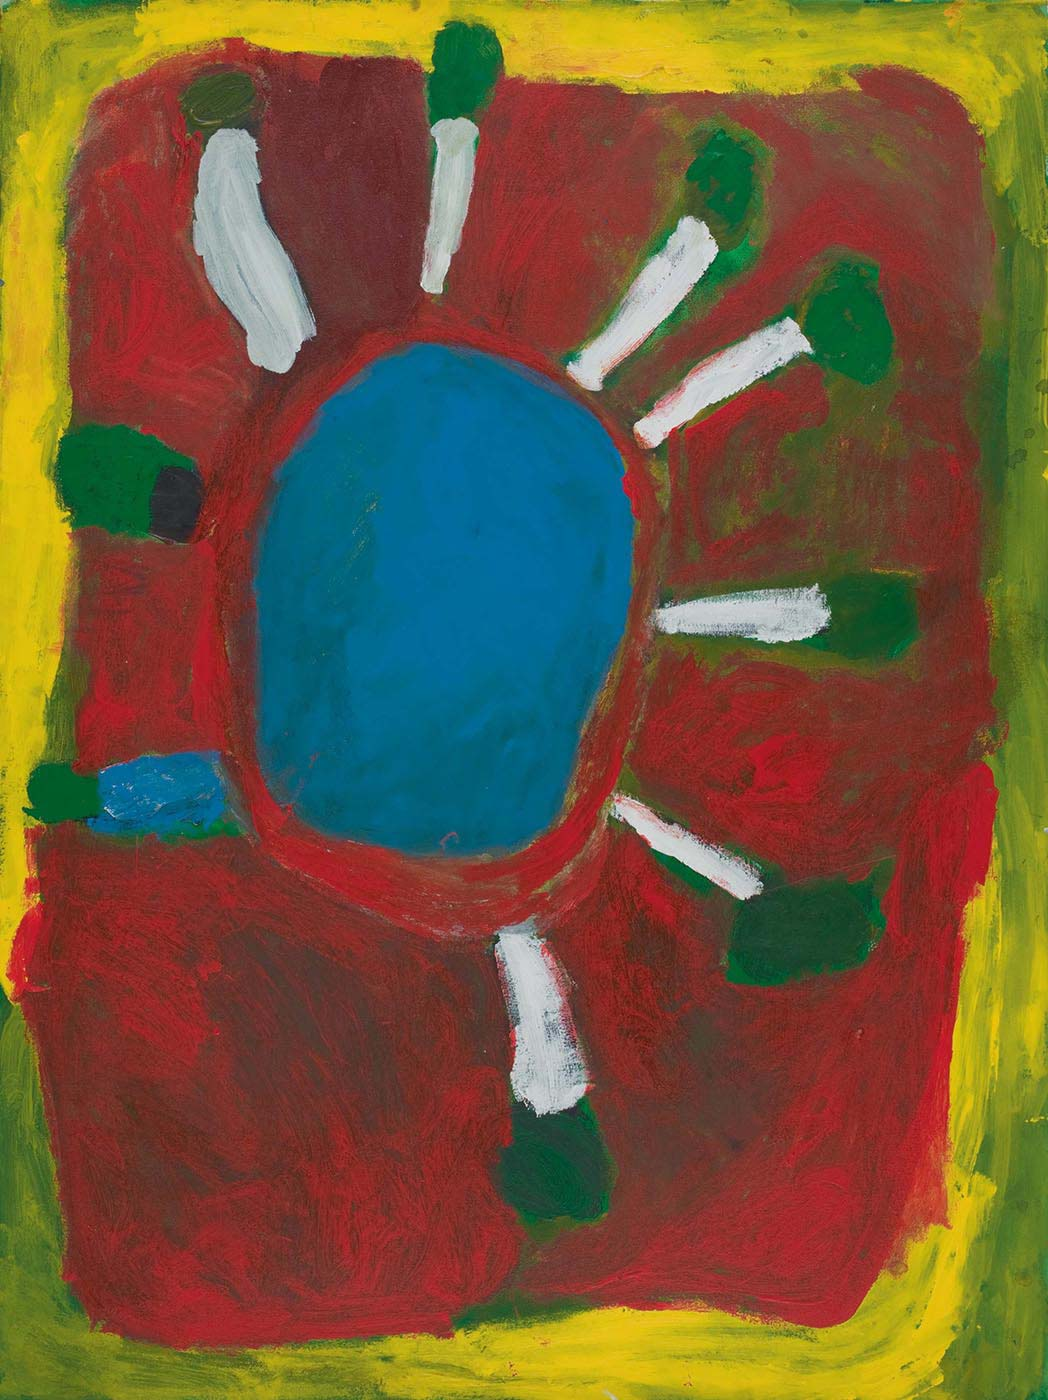 A painting on canvas with a blue circle in the centre with white and green tree-like motifs radiating around the edge, as well as one blue and green rectangle and a green and black oval shape. The central image is on a background of green overlaid by a square of red with a yellow border. - click to view larger image